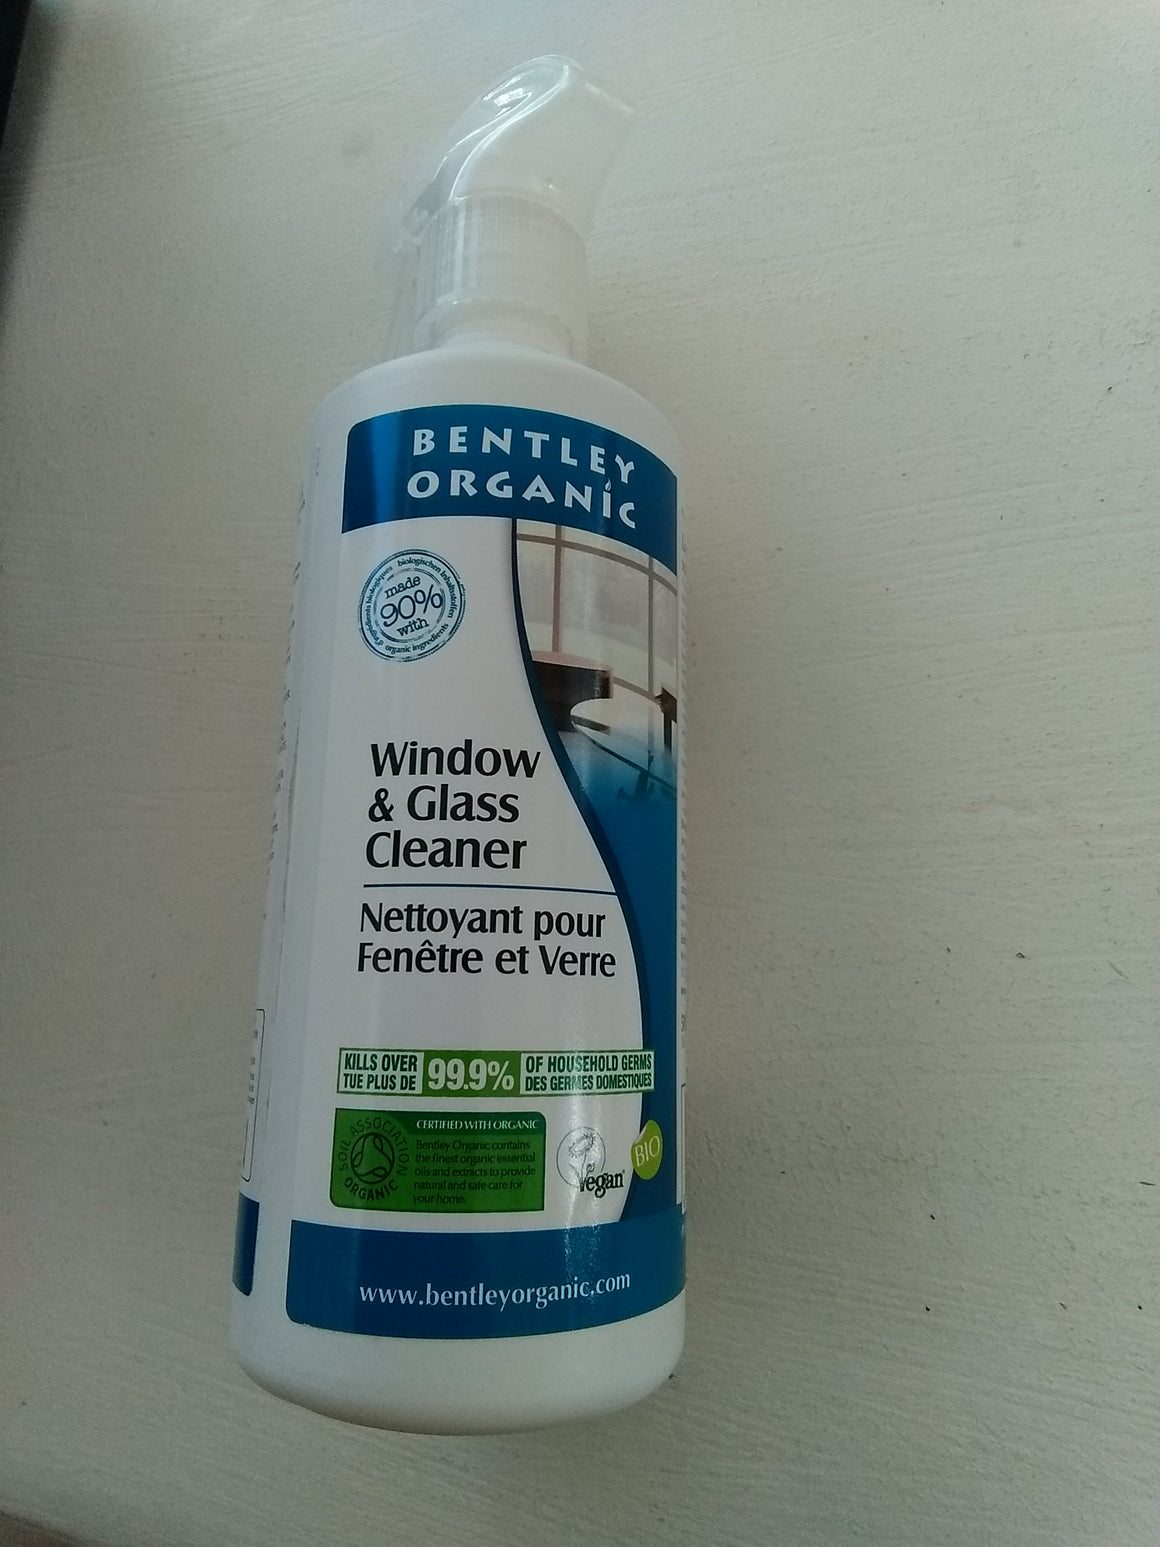 Bentley Organic - Window & Glass Cleaner